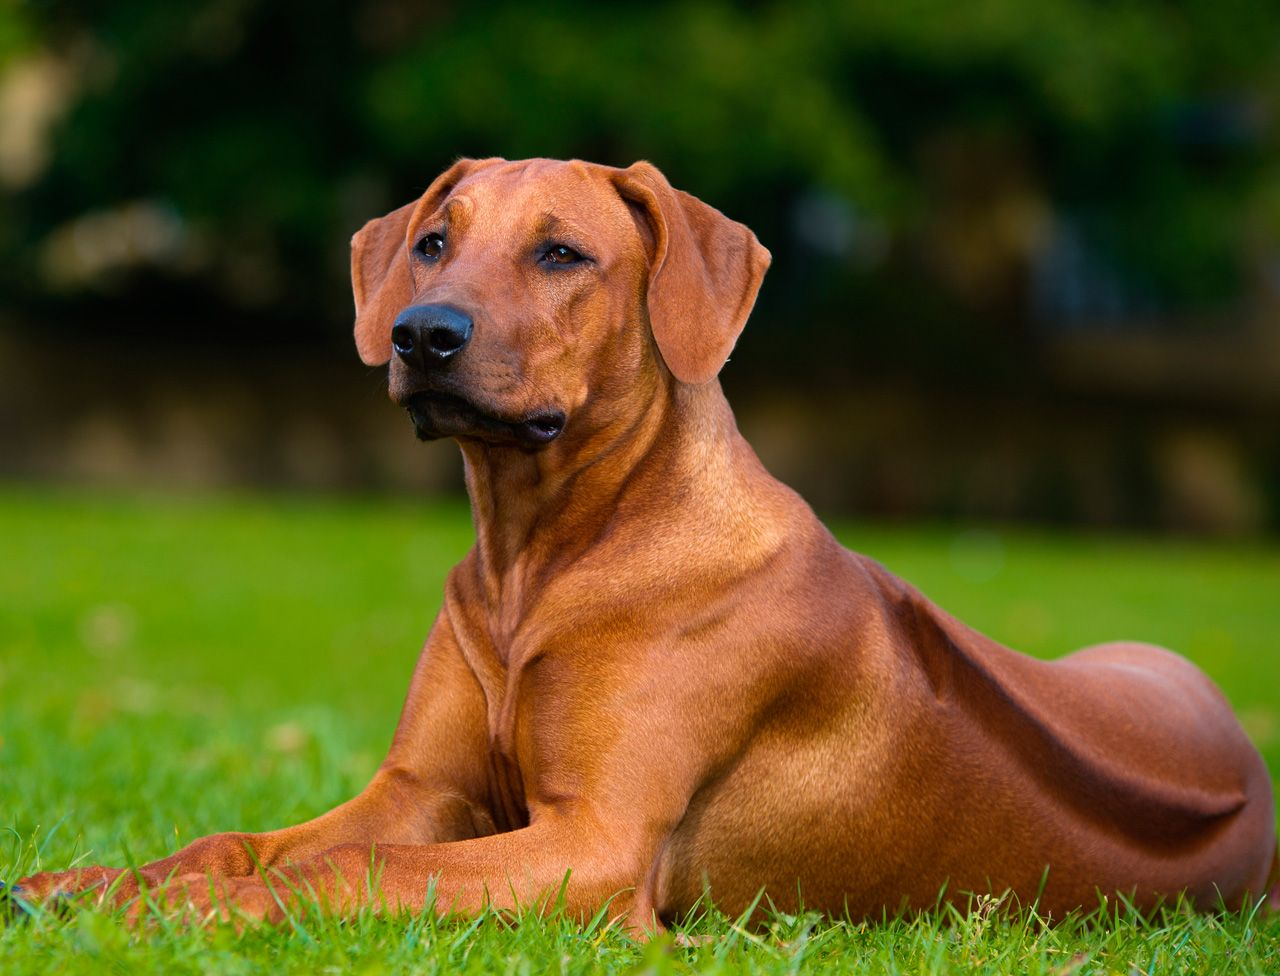 Mastiff dog breed information pictures characteristics amp facts - Rhodesian Ridgeback Dog Breed Information After A Few High Energy Puppy Years Rhodesian Ridgebacks Can Turn Into Pretty Mellow Pals